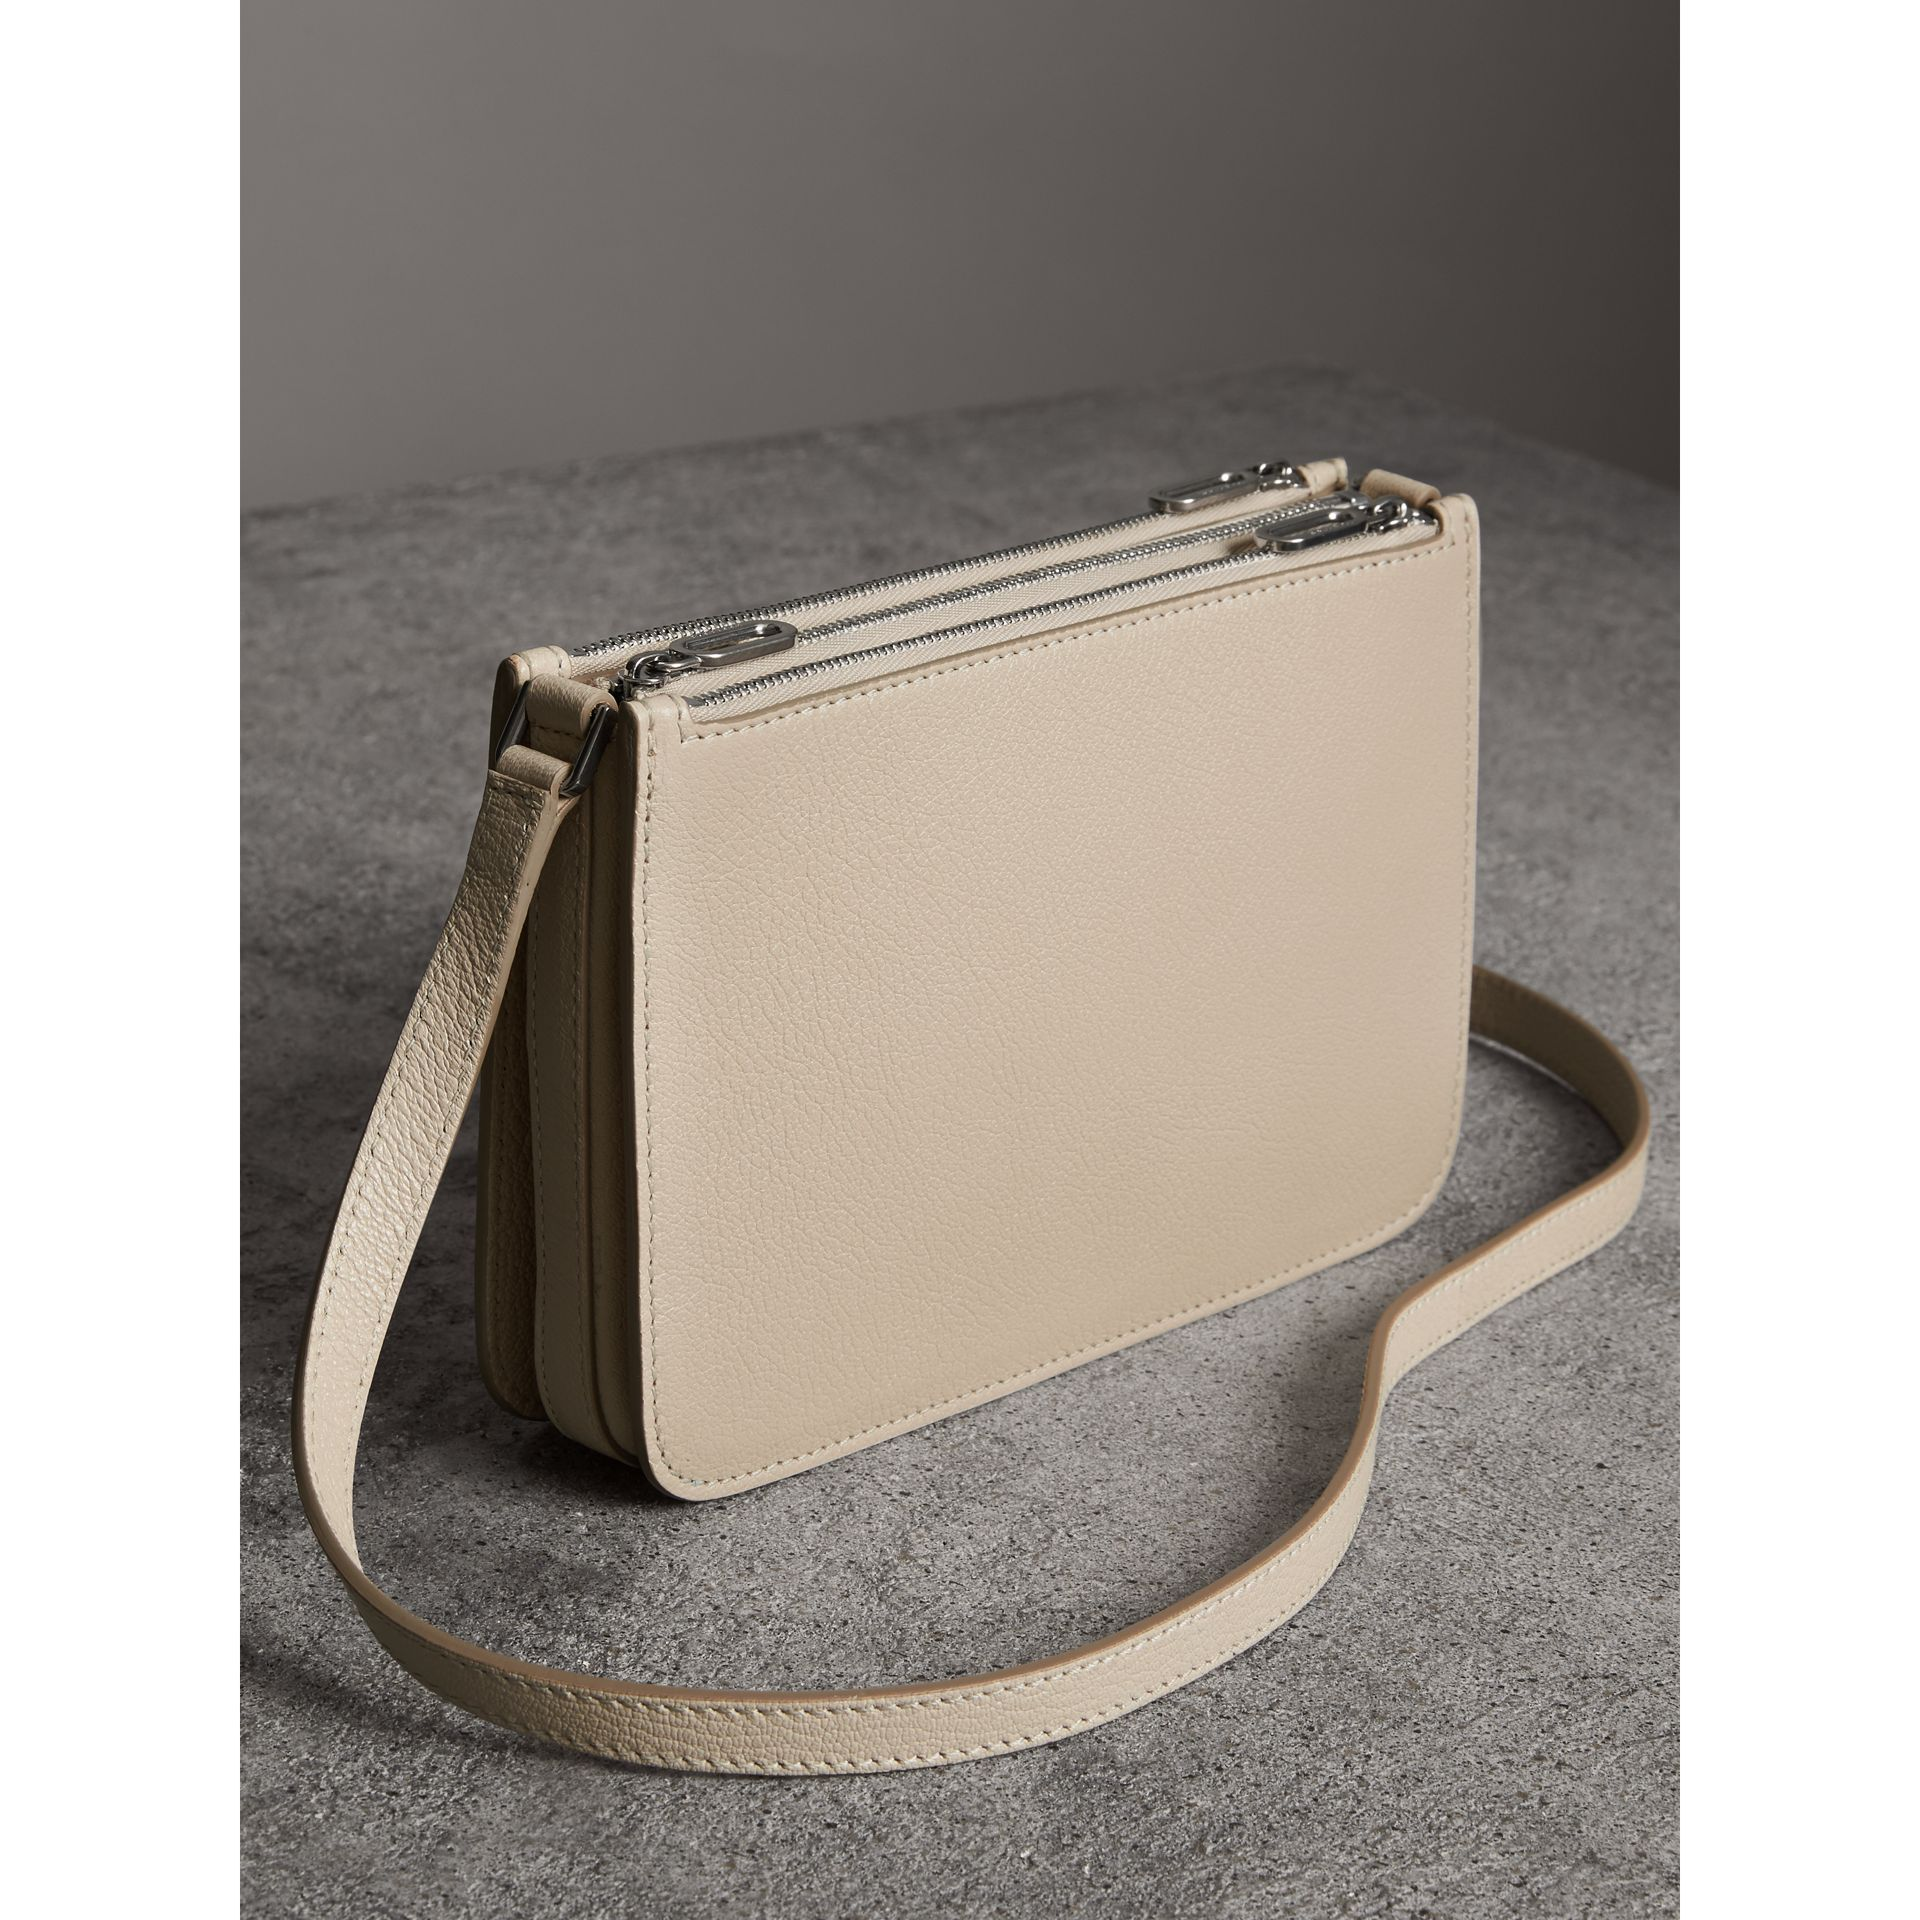 Triple Zip Grainy Leather Crossbody Bag in Stone - Women | Burberry - gallery image 4